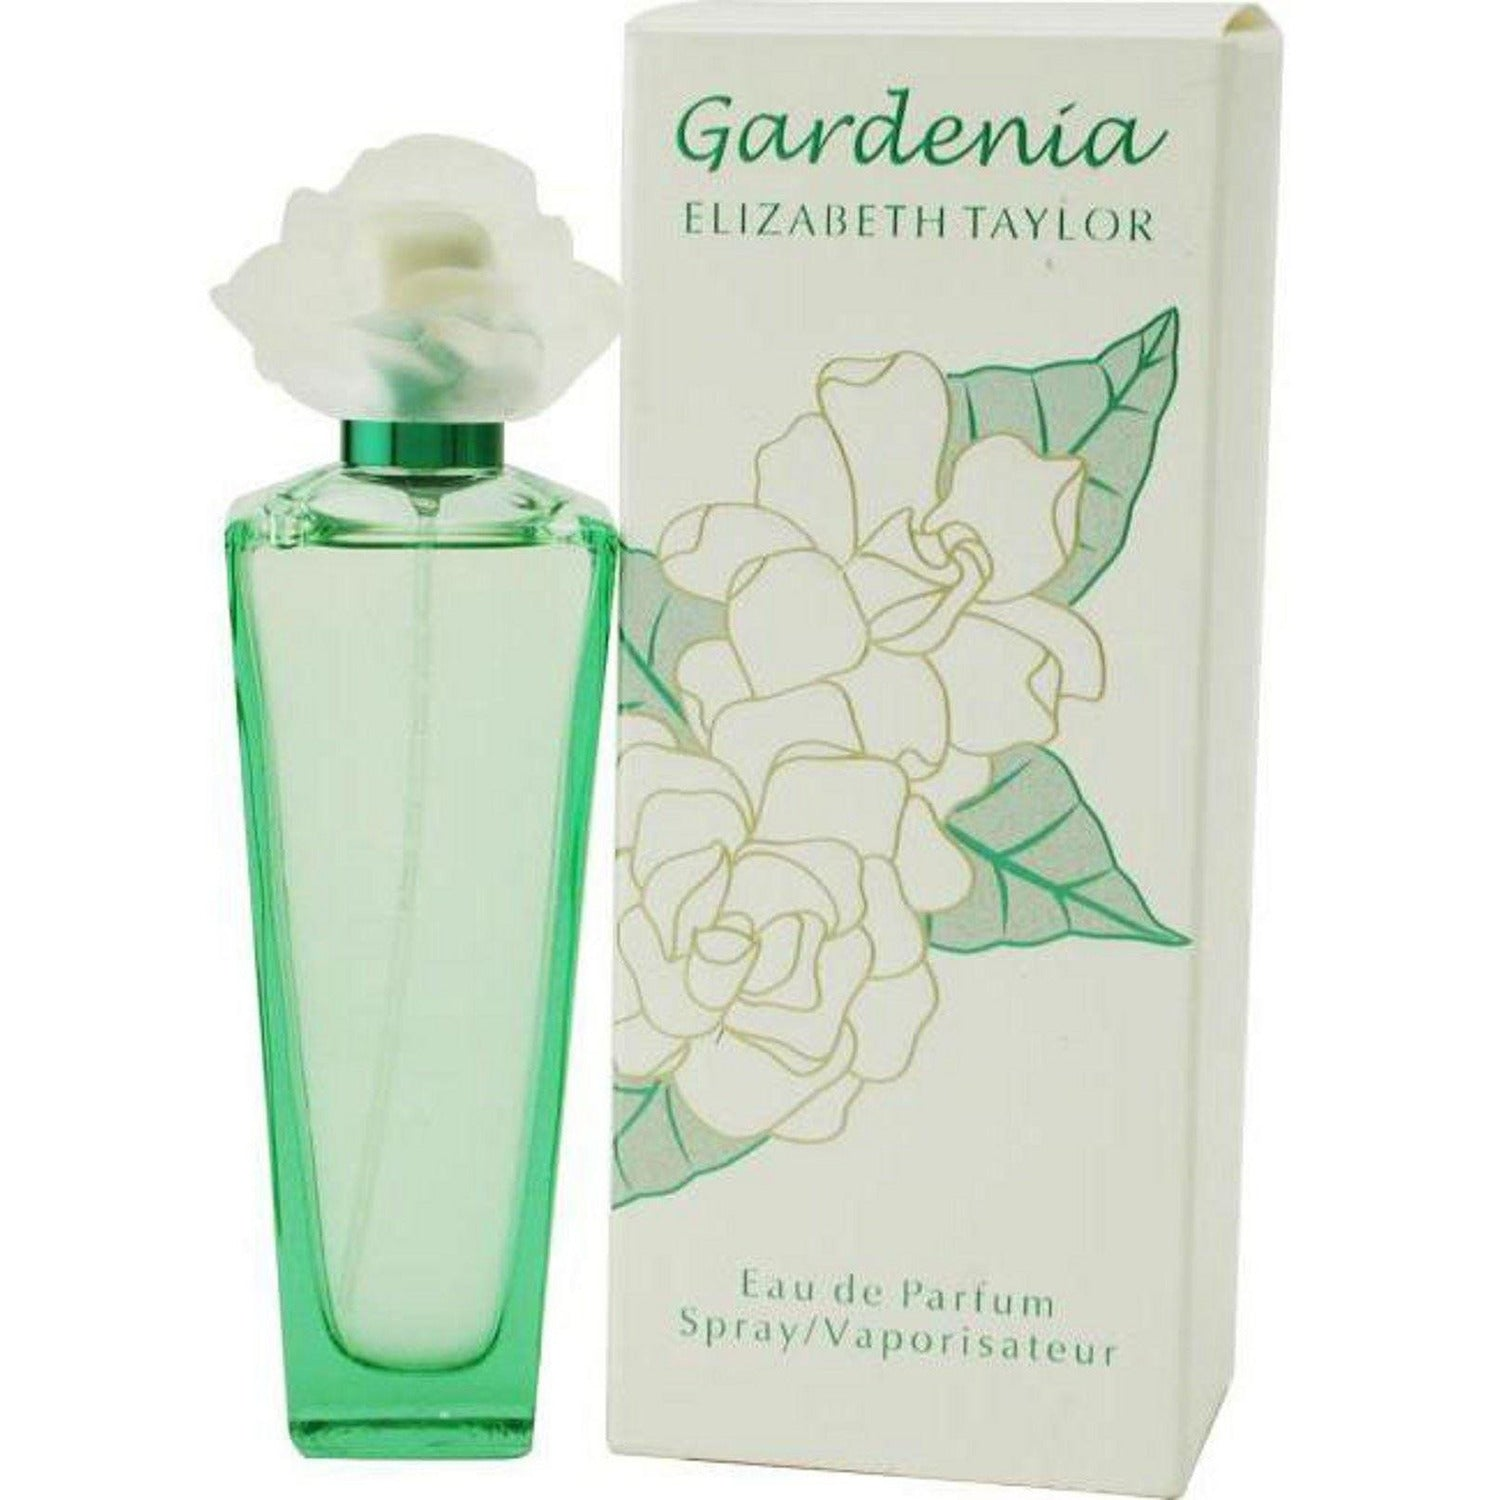 gardenia-by-elizabeth-taylor-3-4-oz-edp-perfume-new-in-box